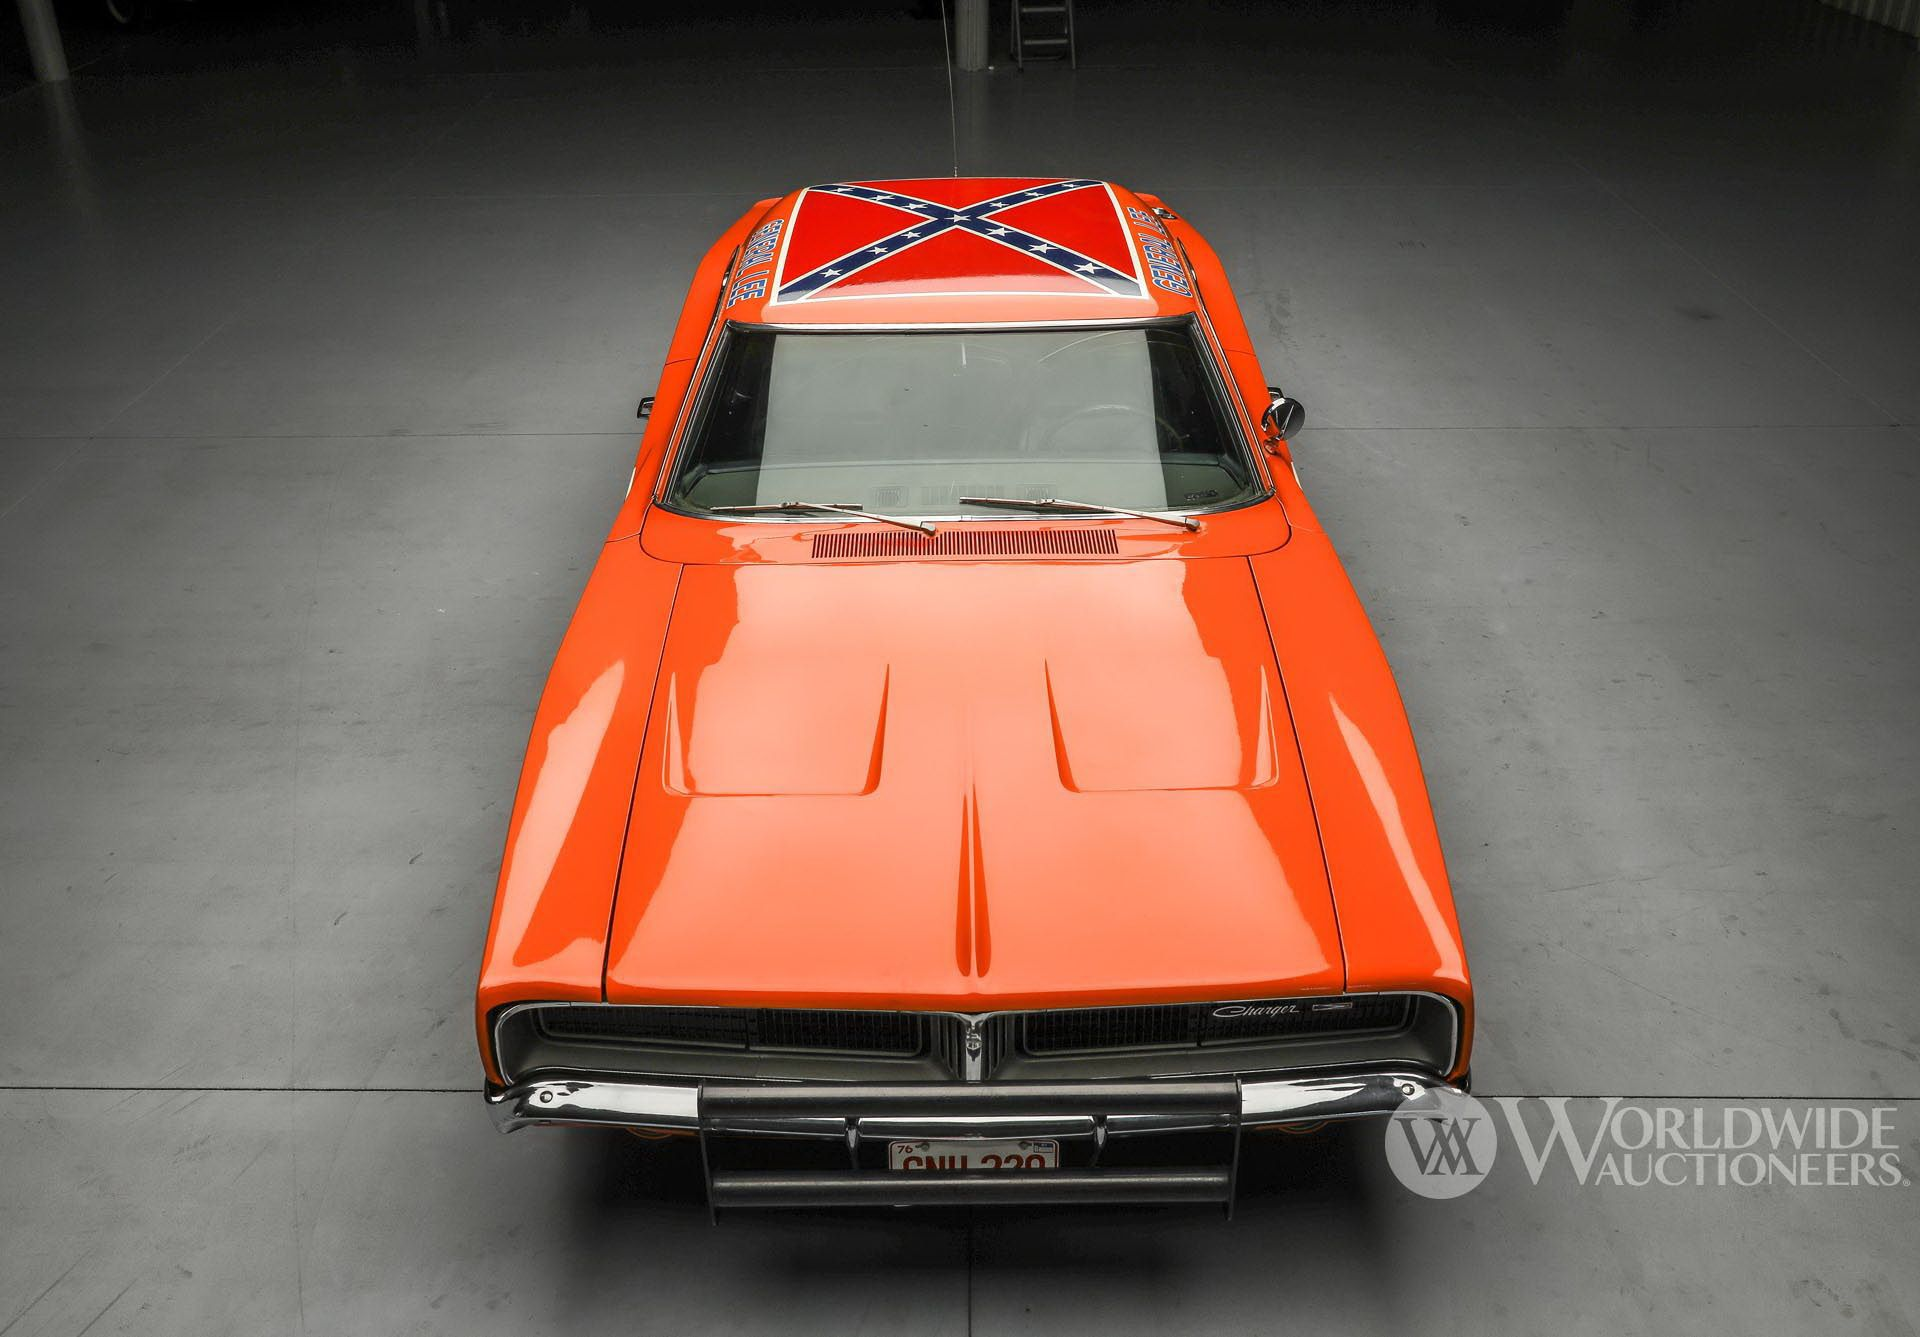 Dodge-Charger-General-Lee-Dukes-Of-Hazzard-auction-9